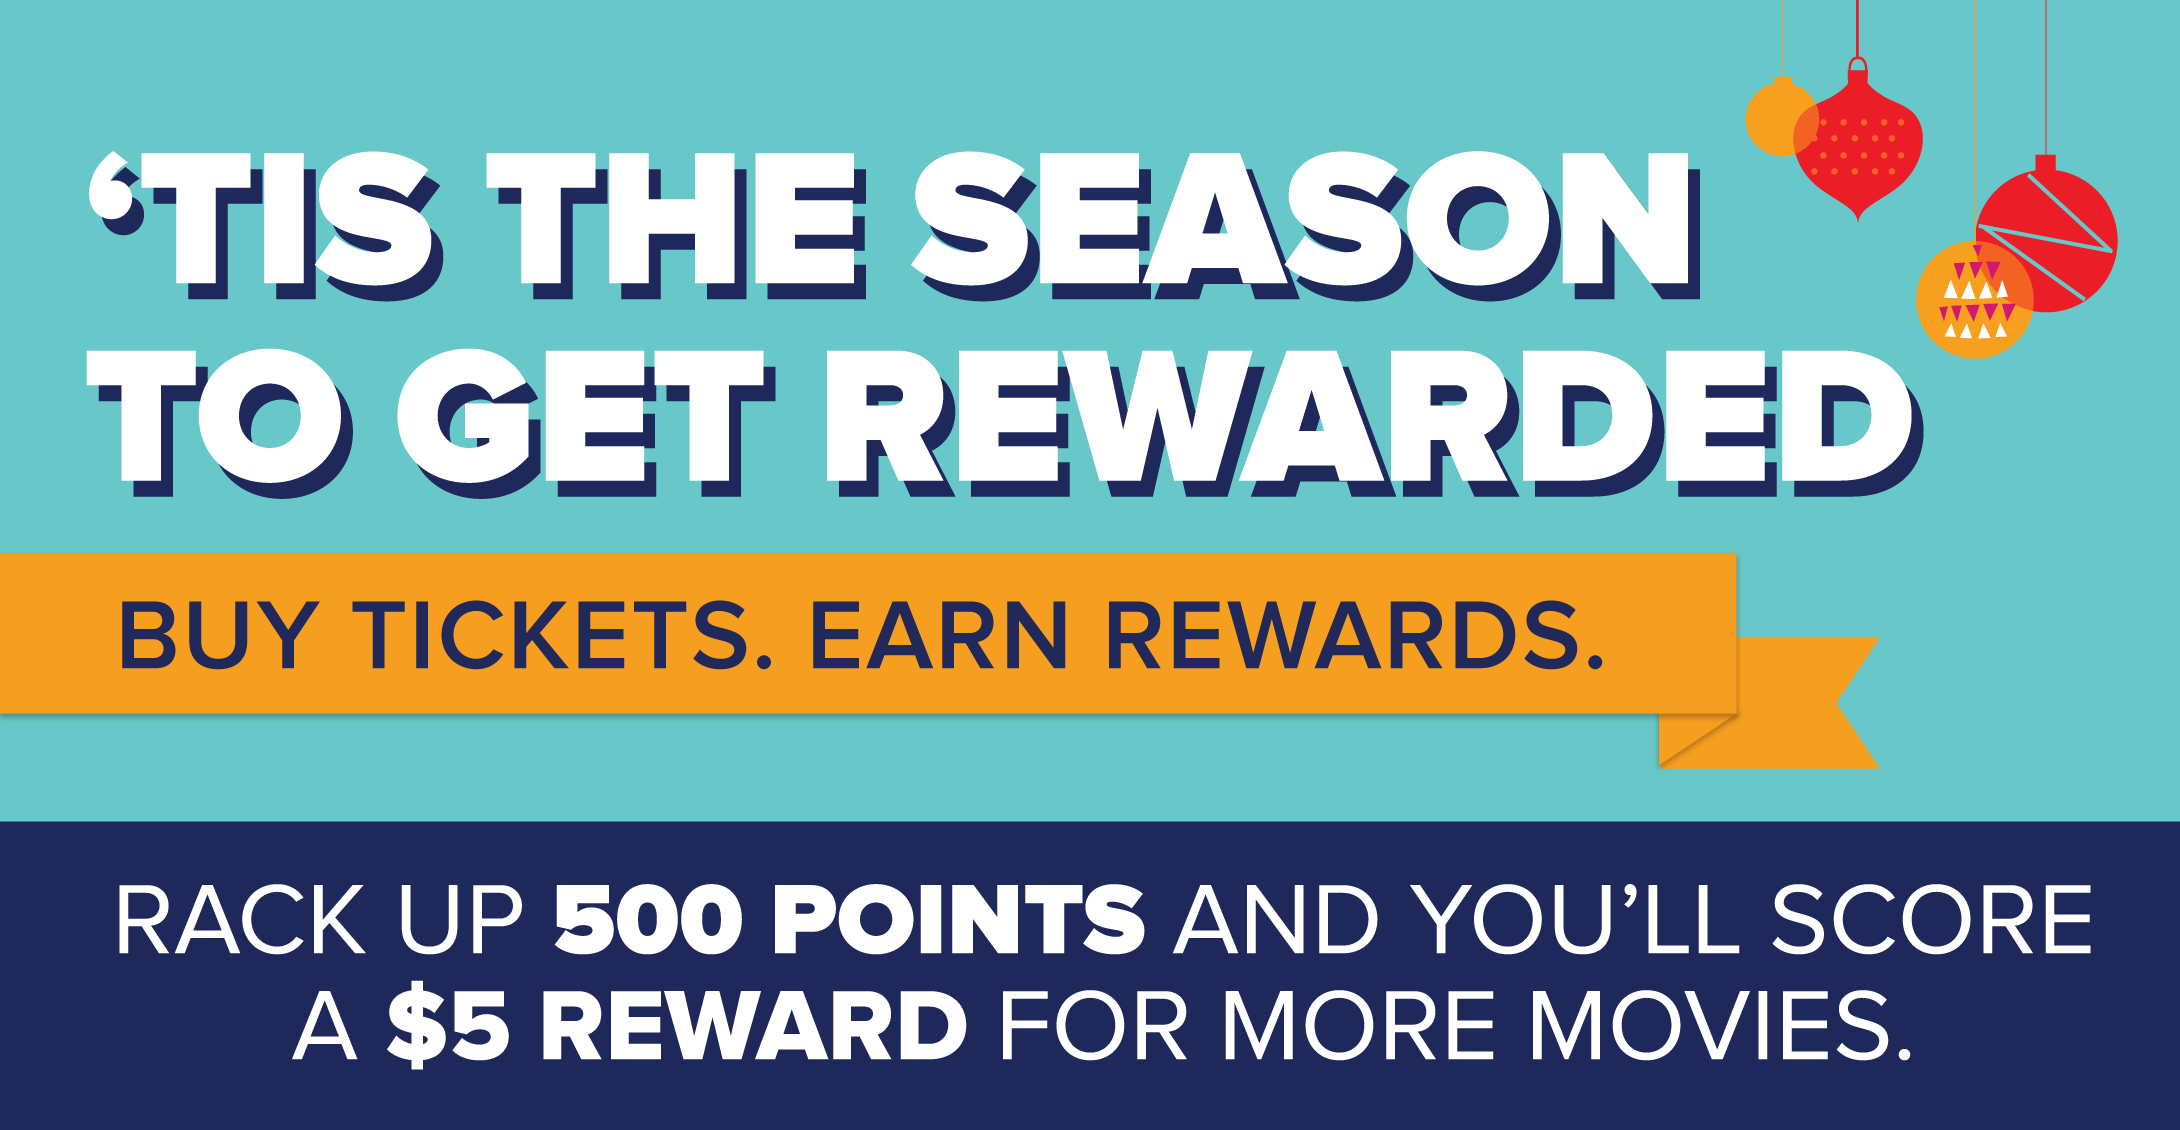 Each ticket gets you 125 points and 500 points earns you $5.